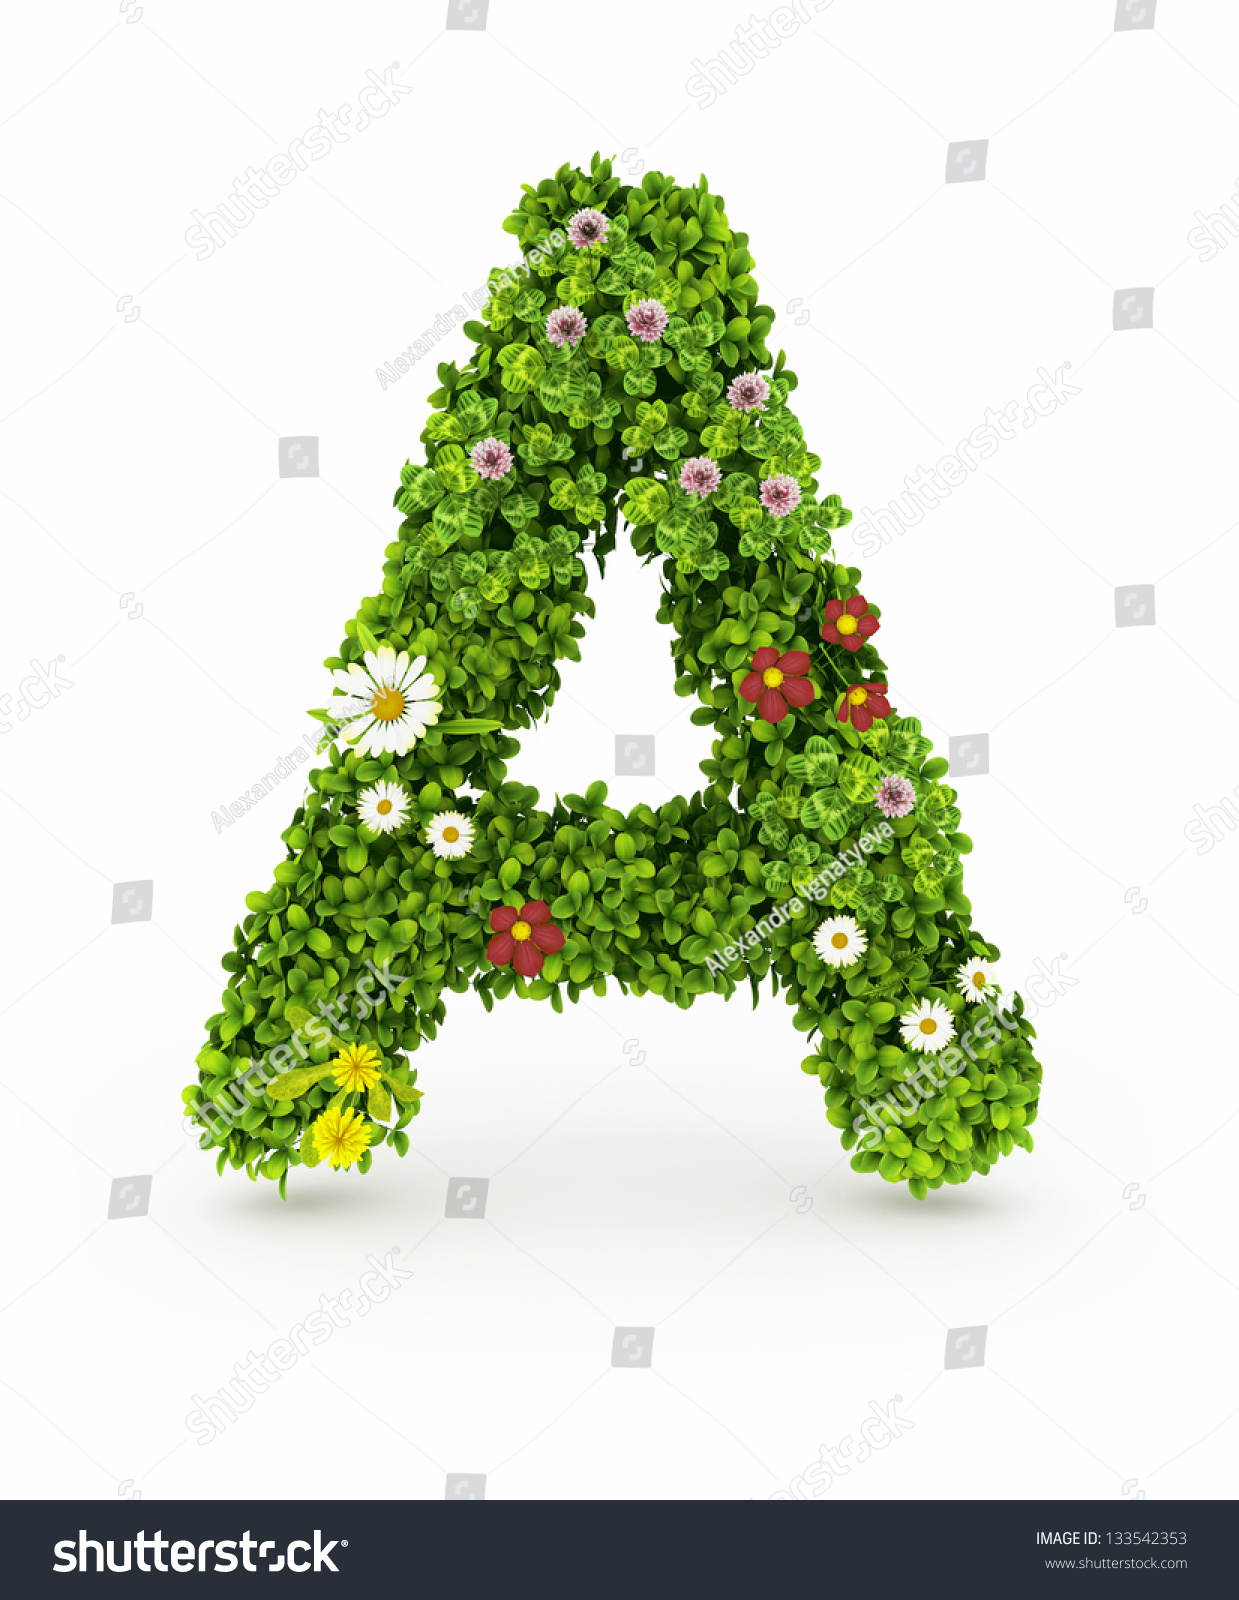 very nice pictures of flowers savingourboys info bluegrass clip art floral images bluegrass clipart transparent background